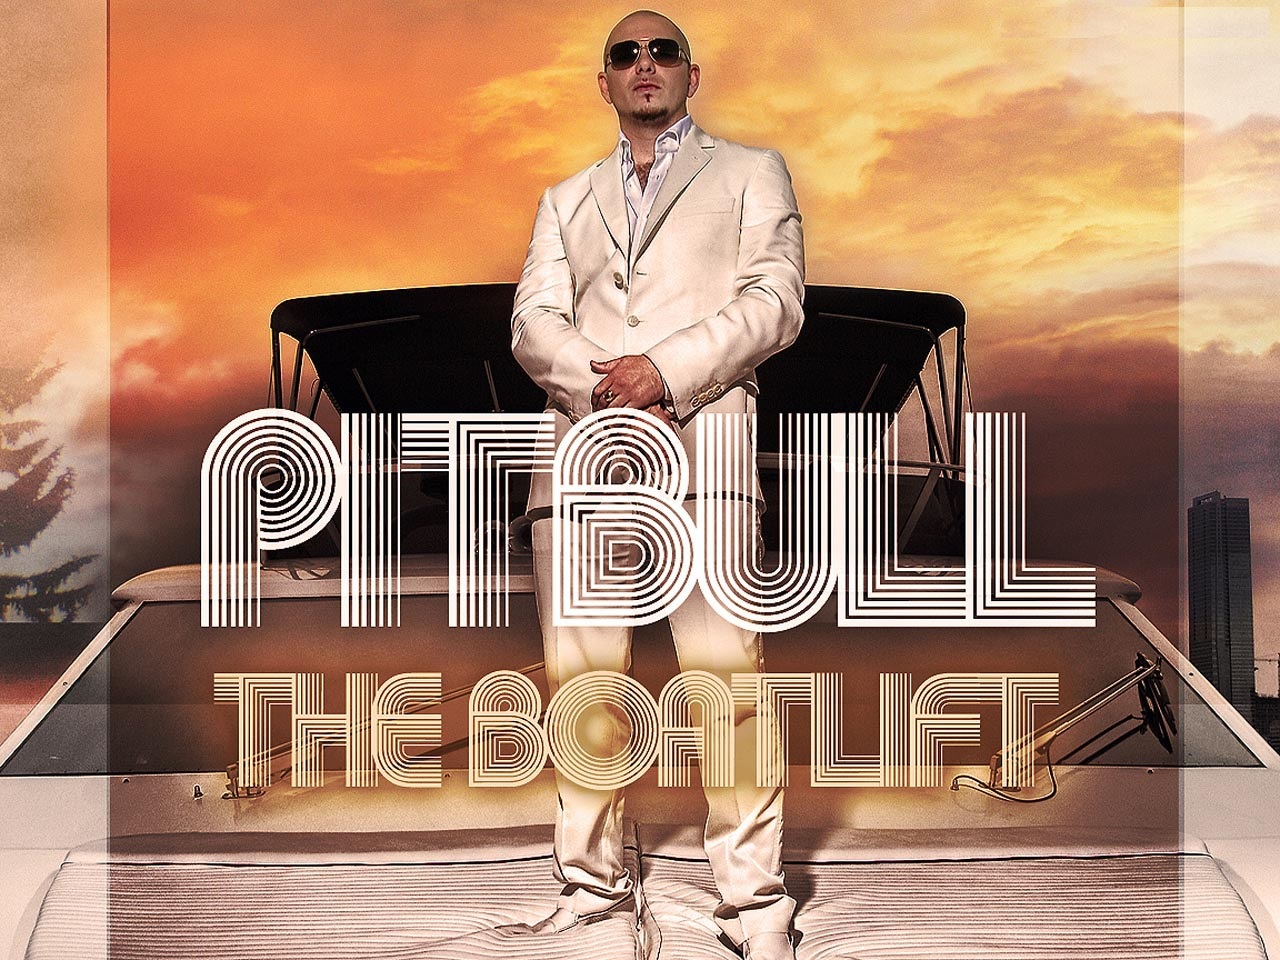 Pitbull The Boatlift Wallpapers & Pictures